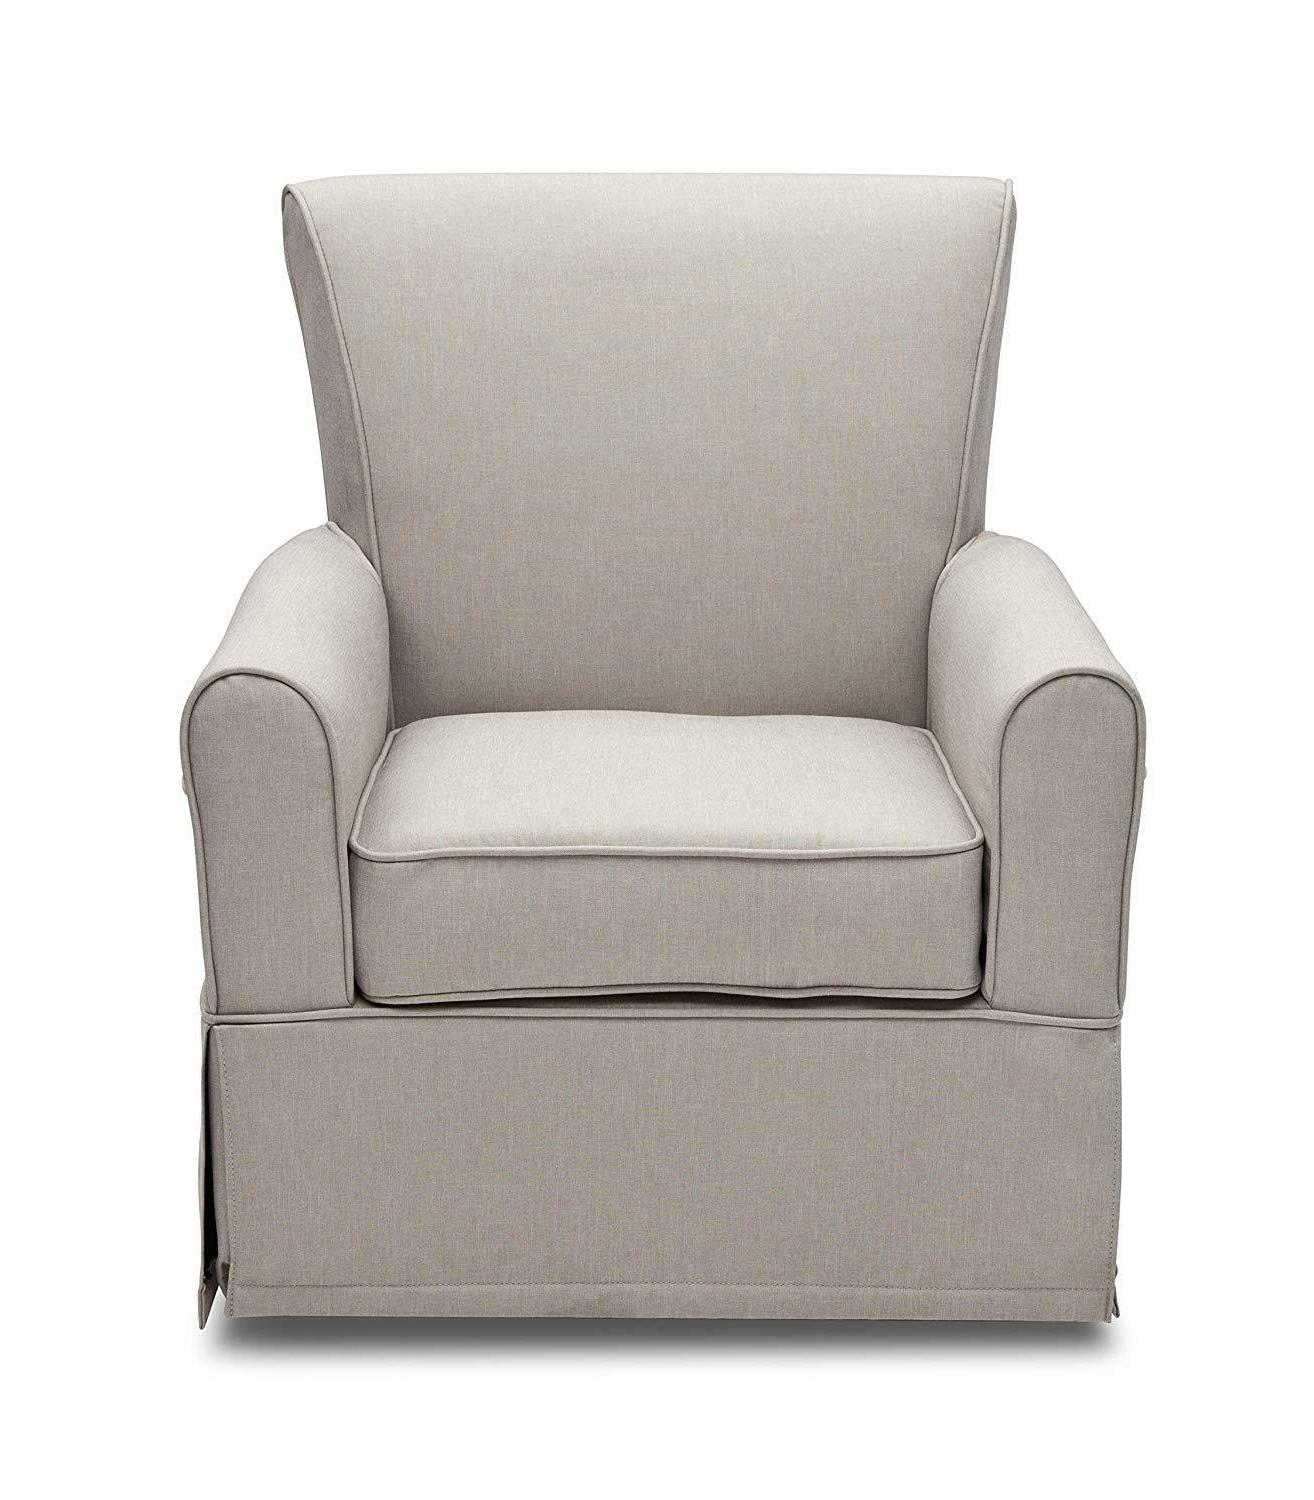 Delta Swivel Chair,